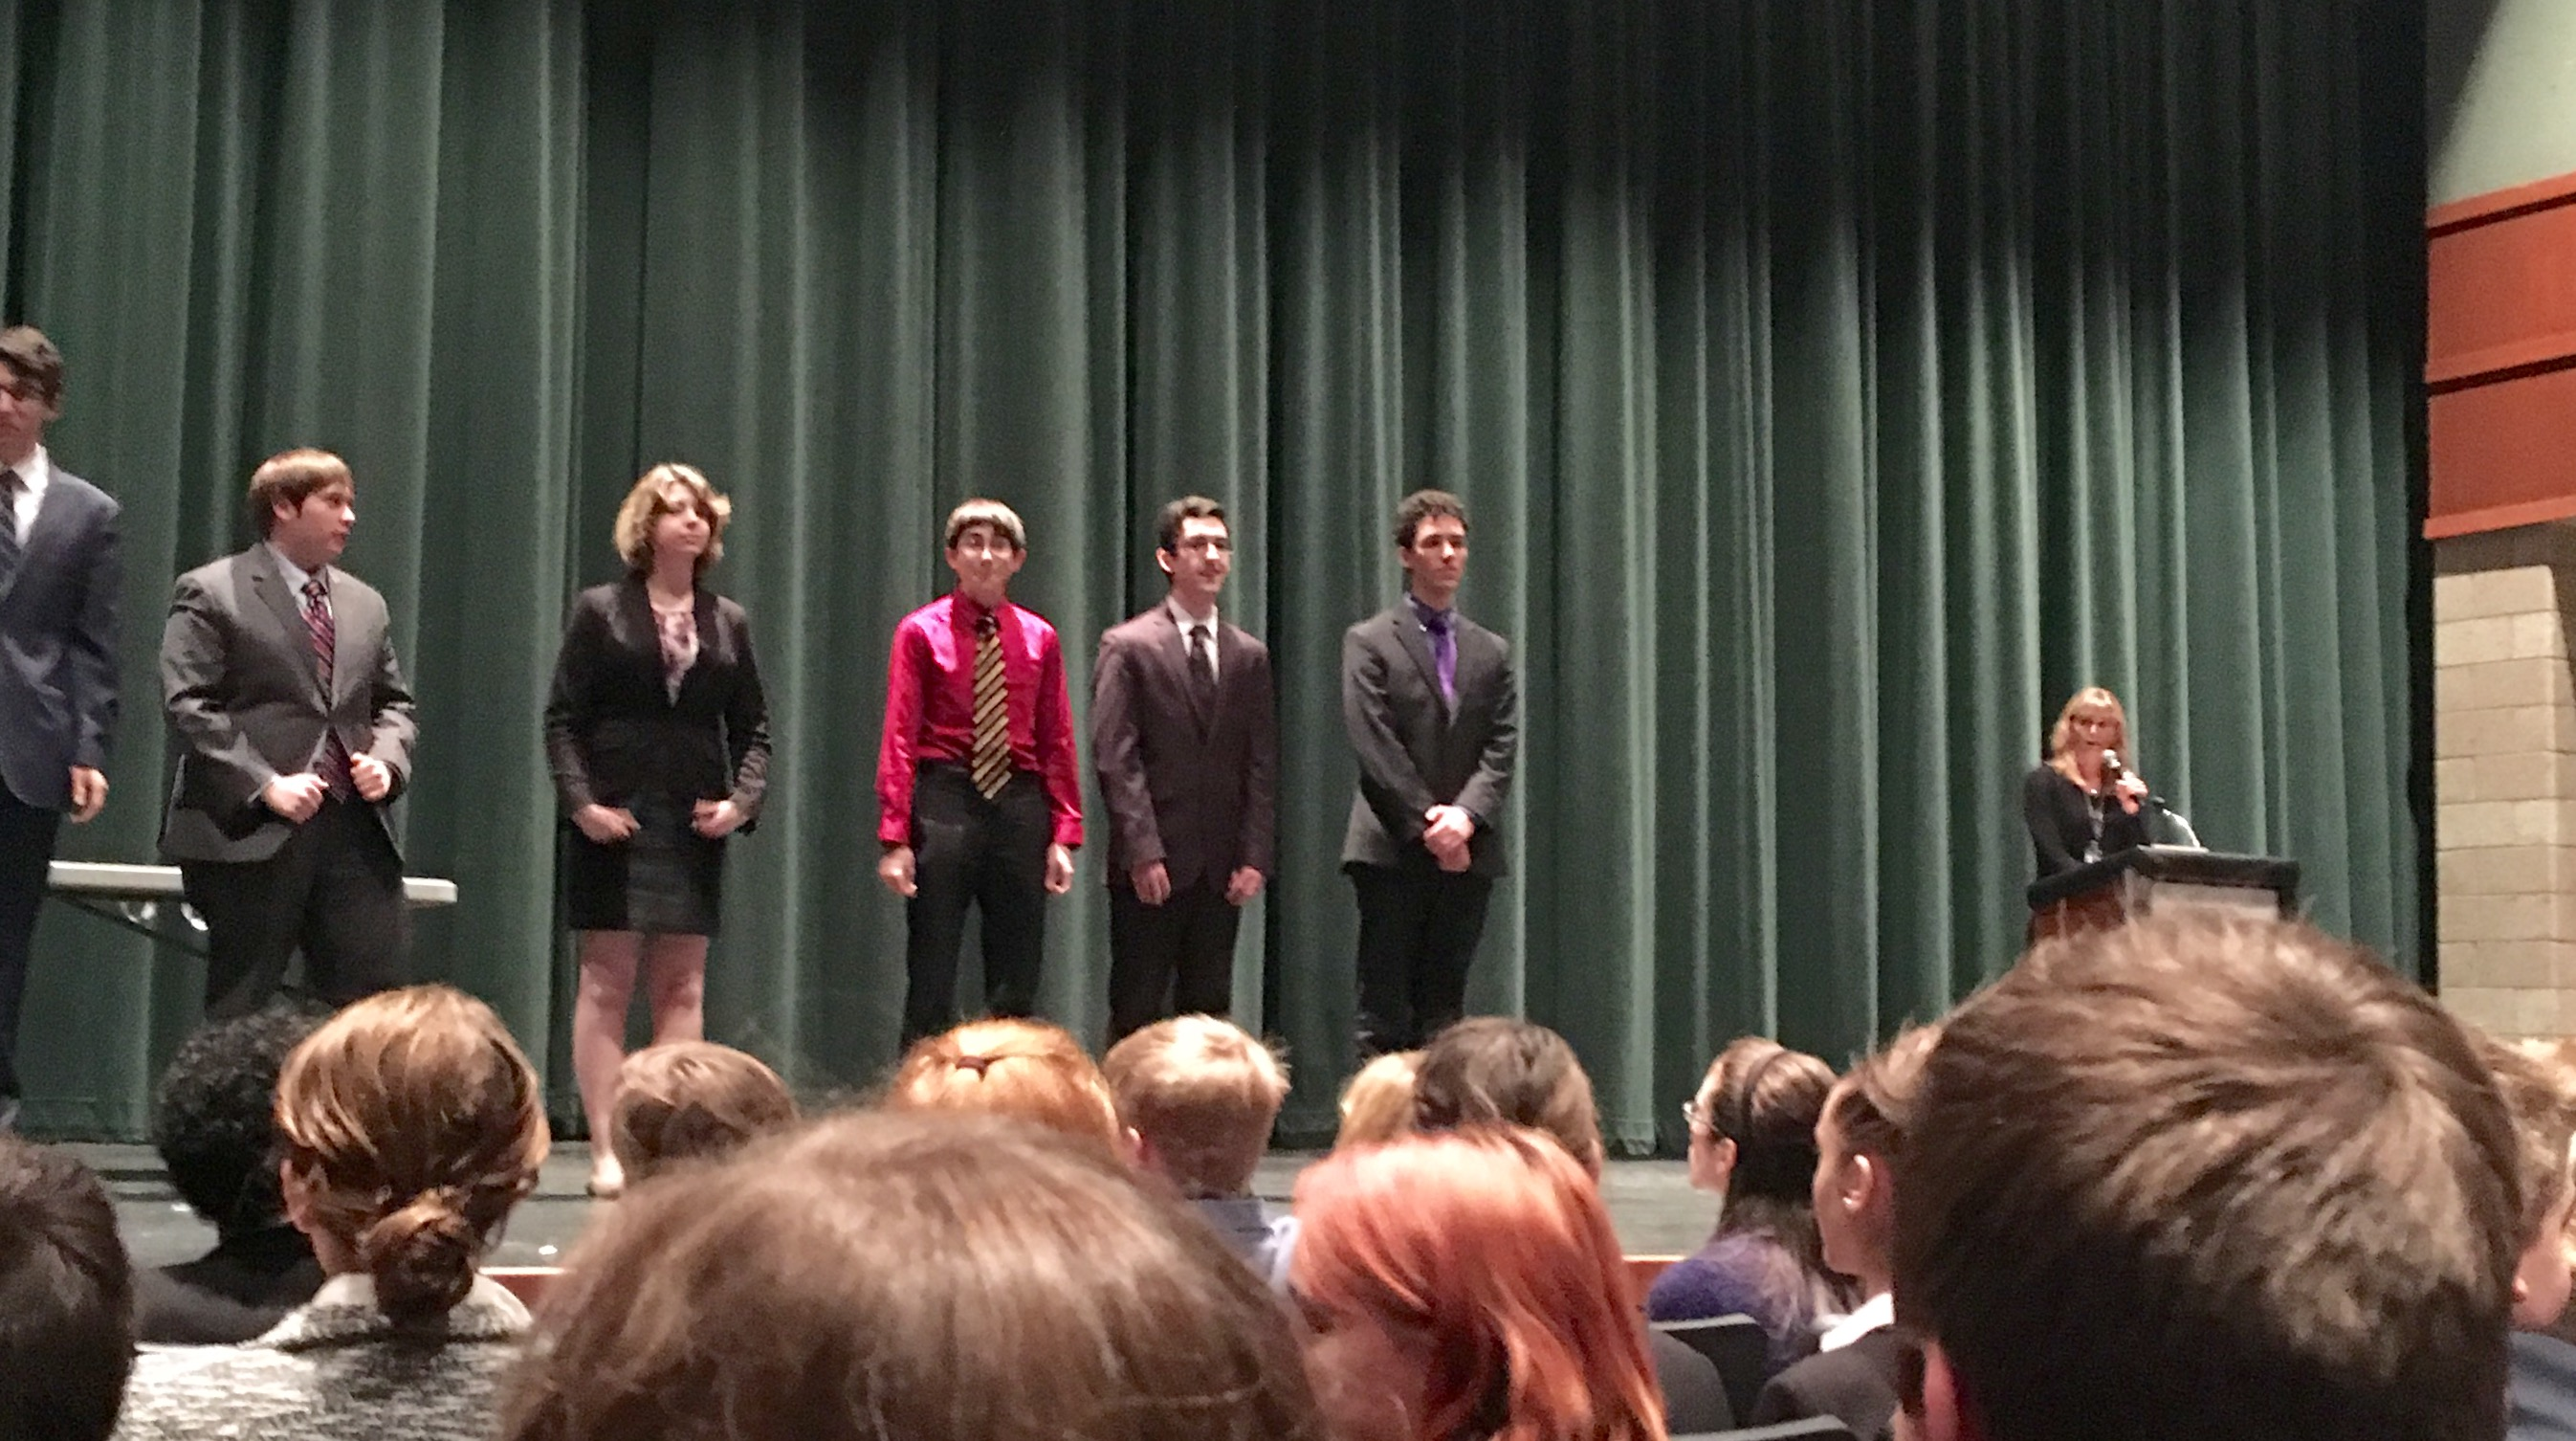 Noah Schraut, Daniel Meyer and Ace Oubaha (left to right) are on the stage awaiting their awards.